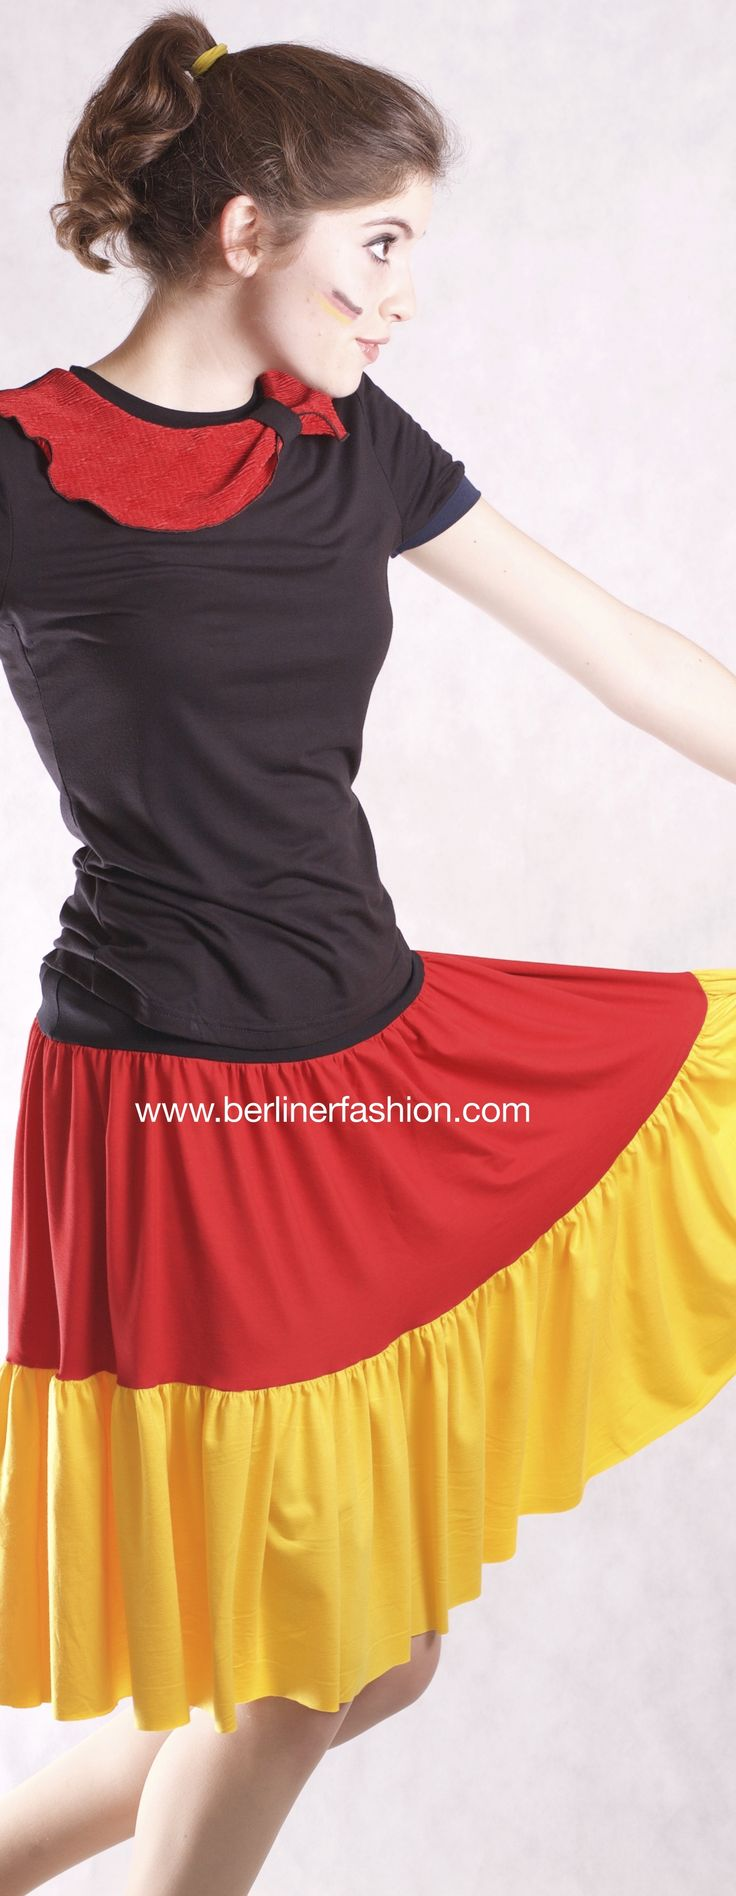 www.berlinerfashion.com